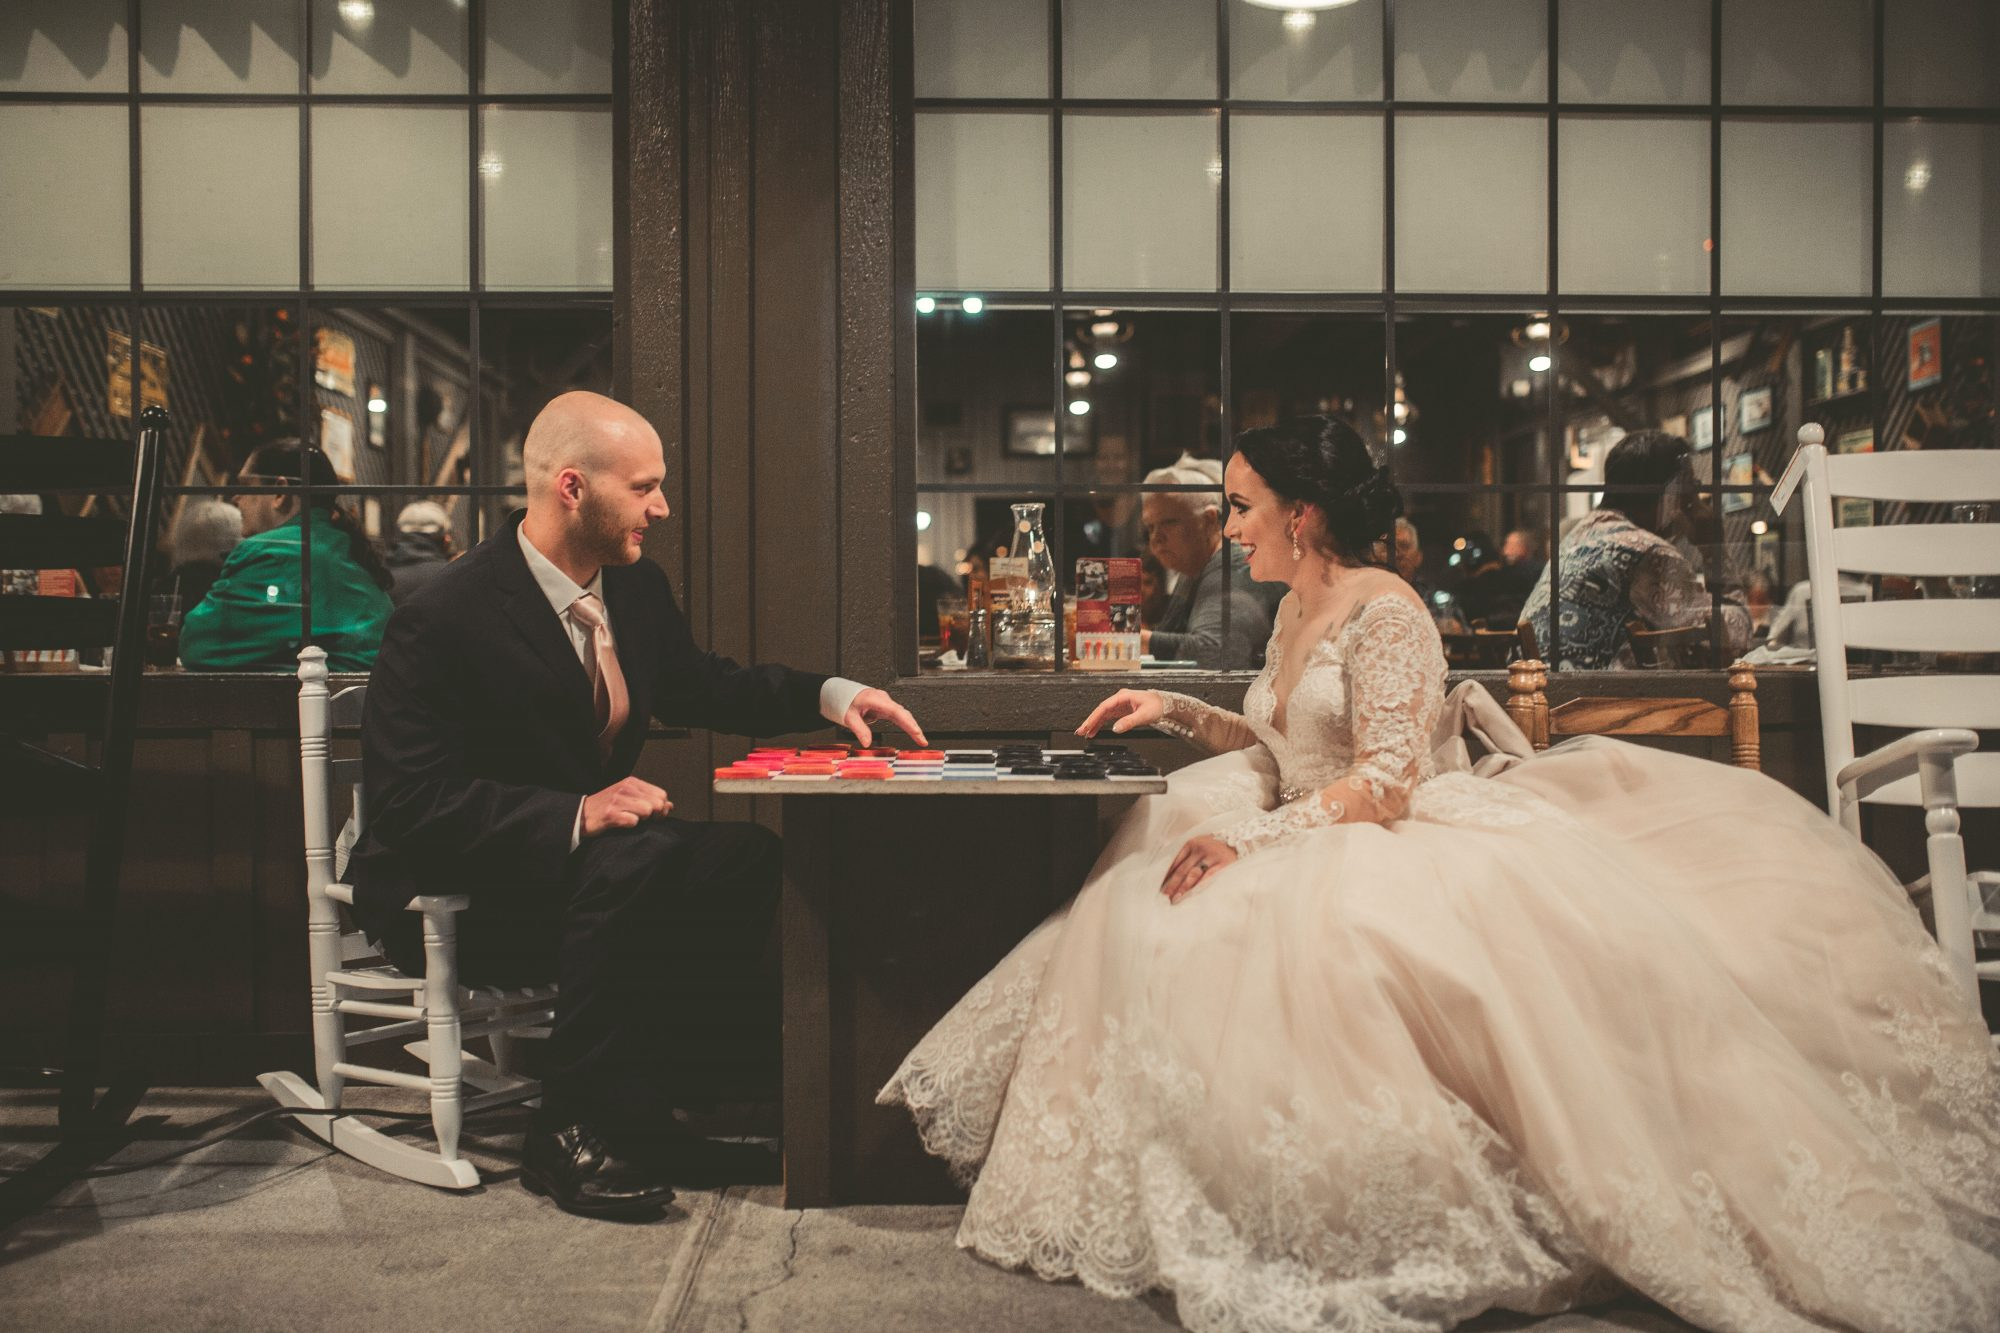 Why This Couple Took Their Wedding Photos at Cracker Barrel